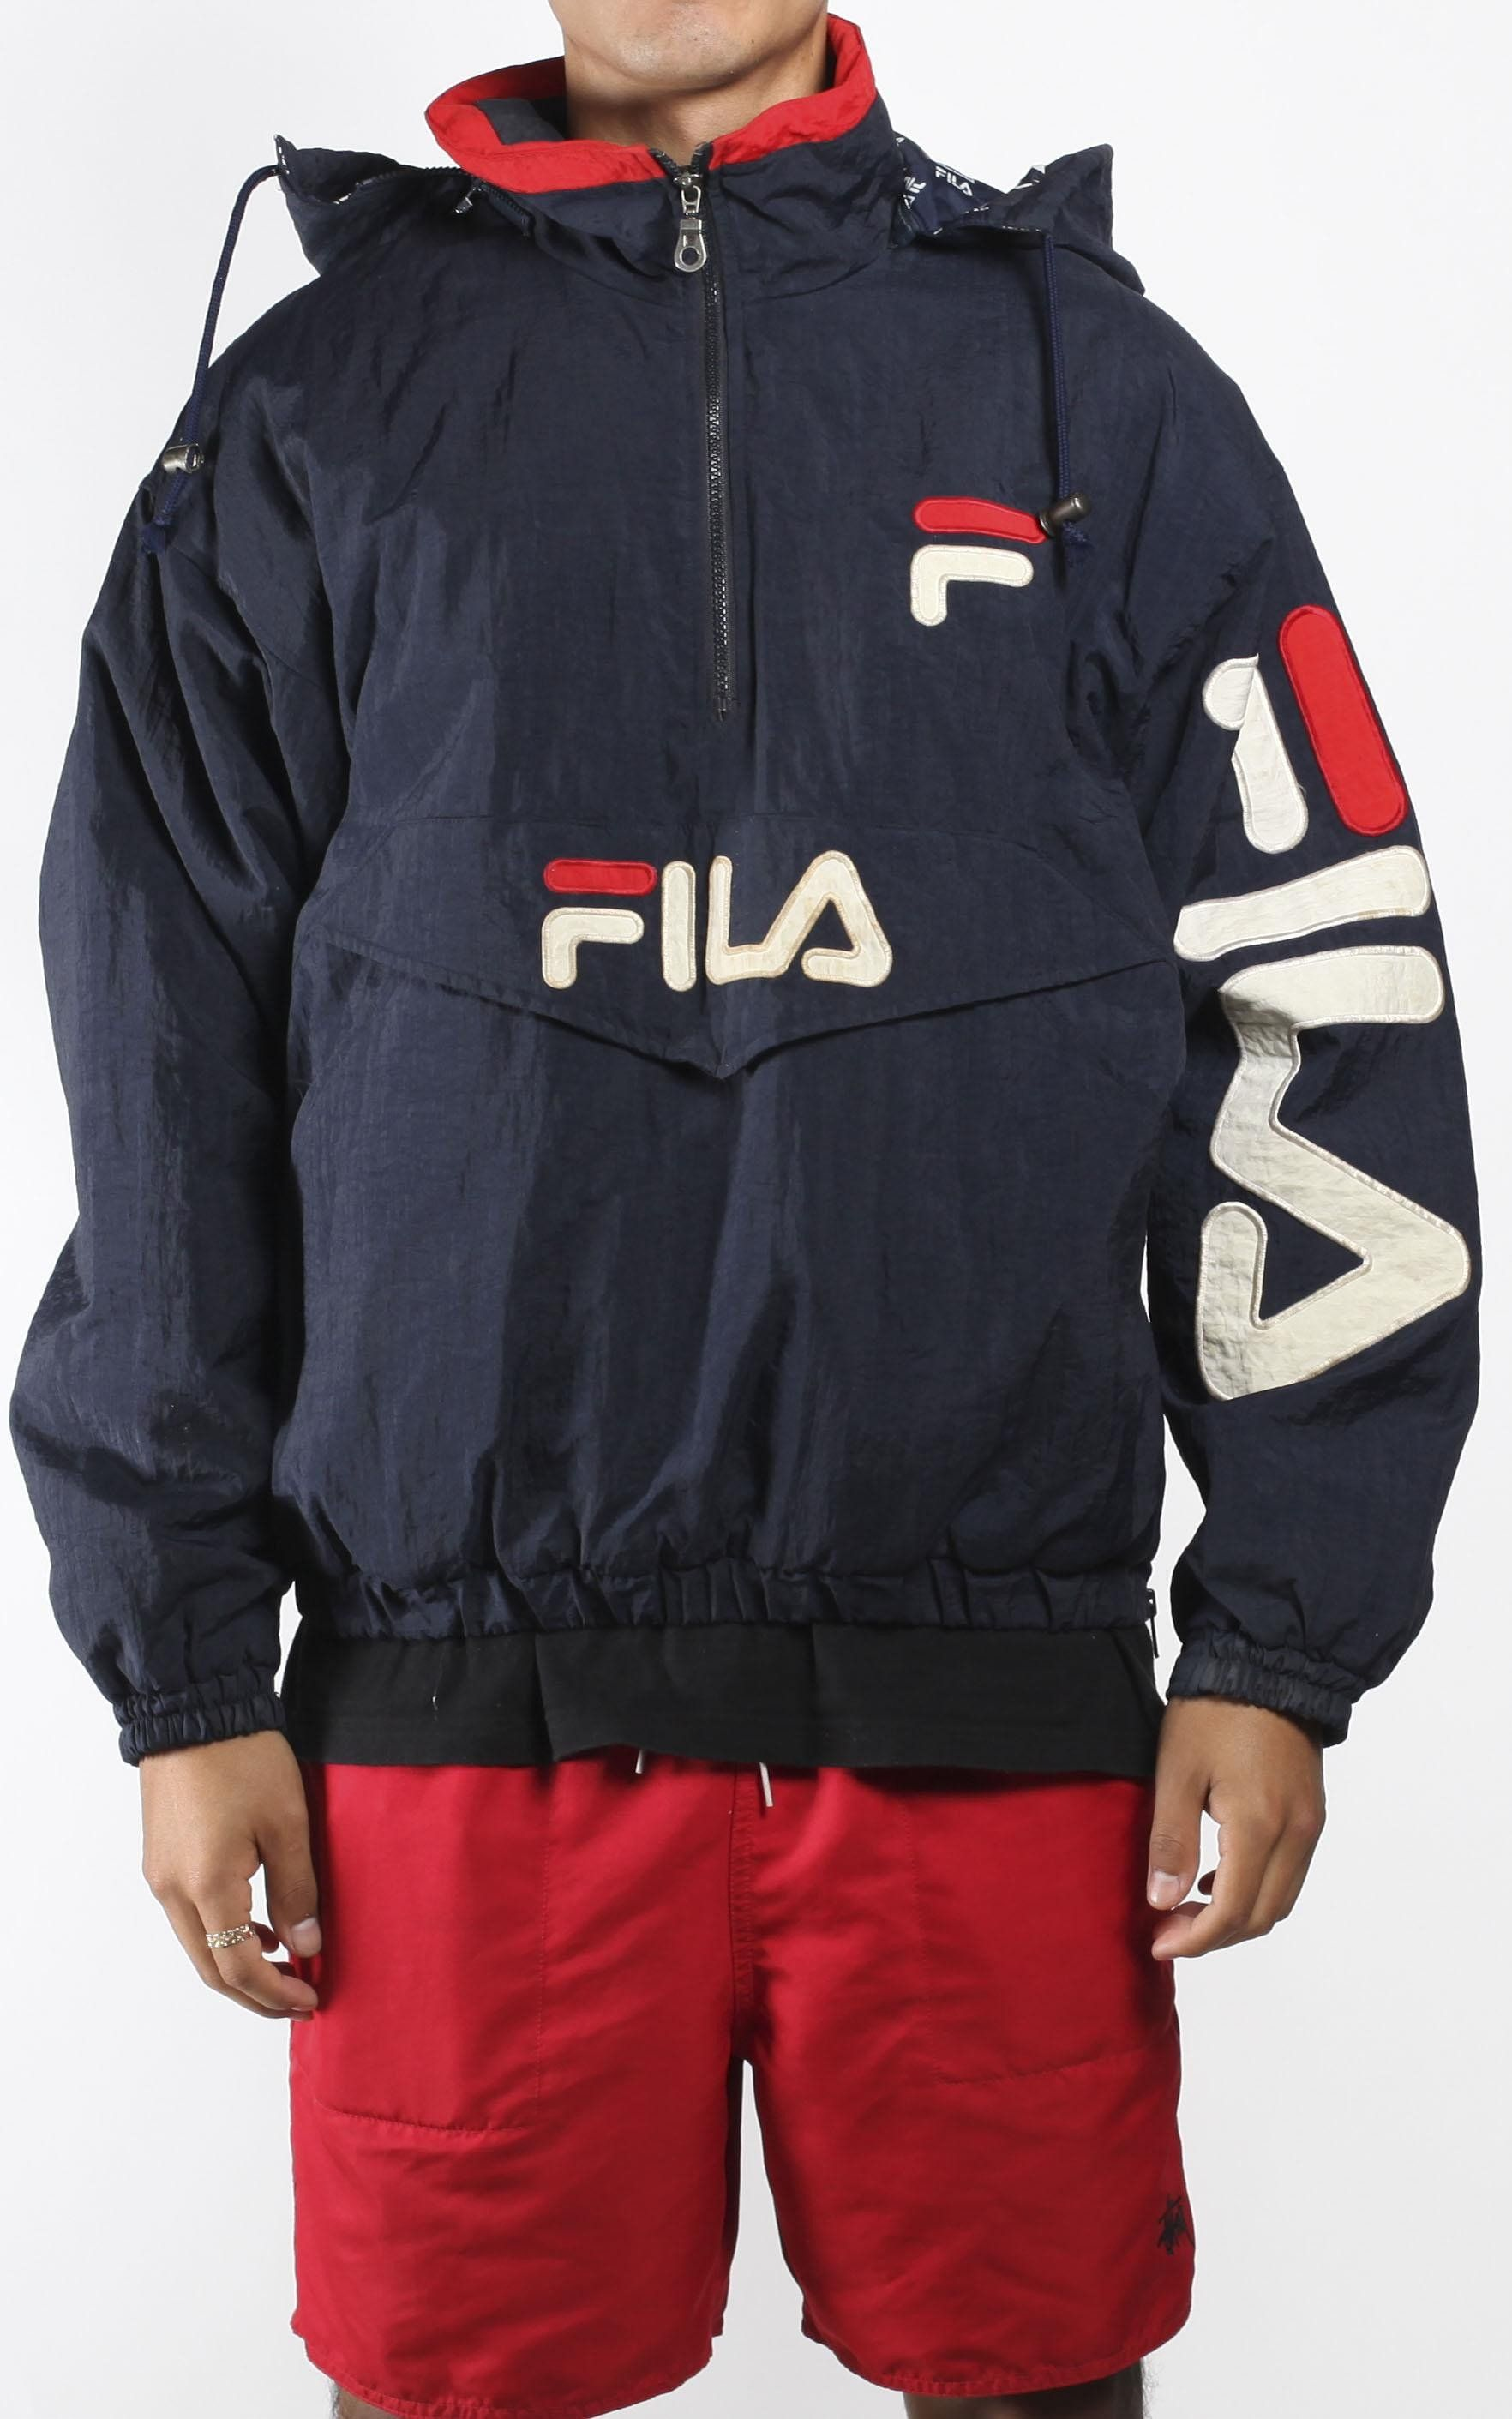 47c3be9e141 Vintage FILA Windbreaker Jacket Sz L